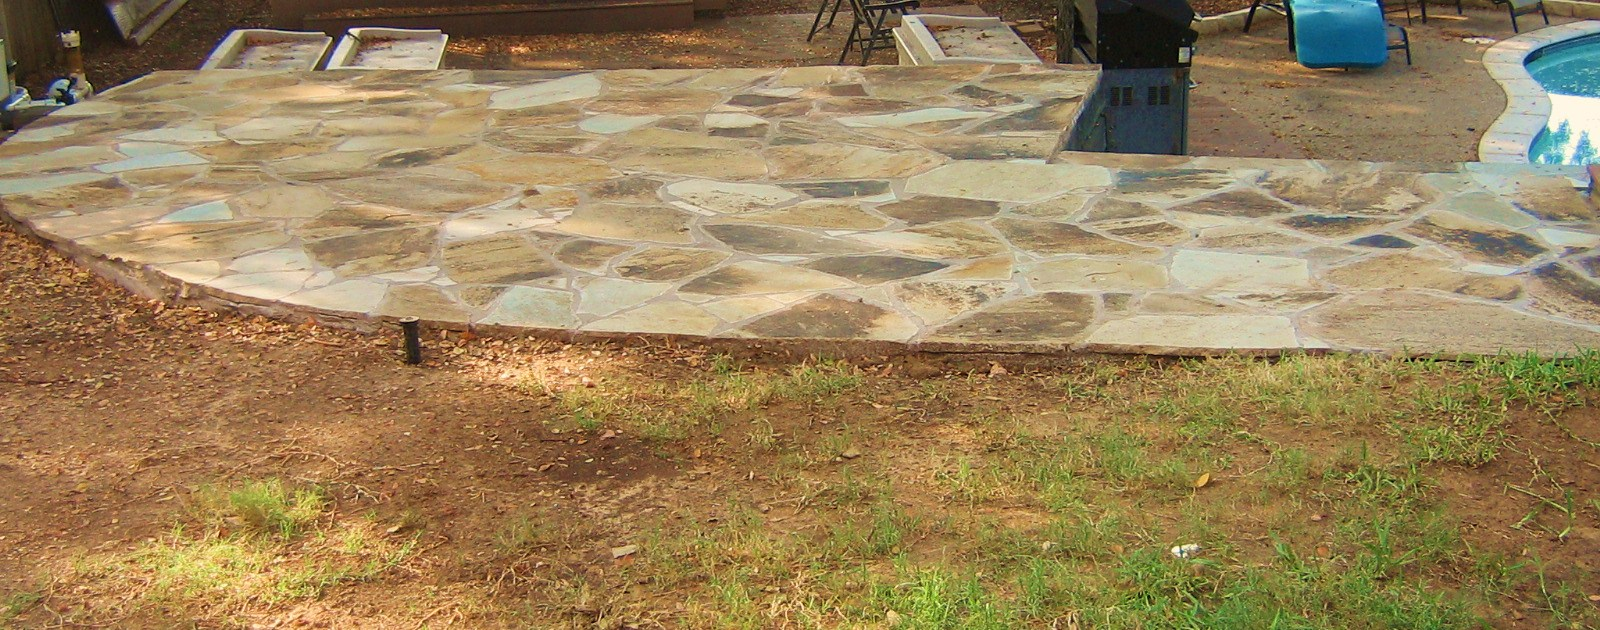 Flagstone patio 250 sq. ft.